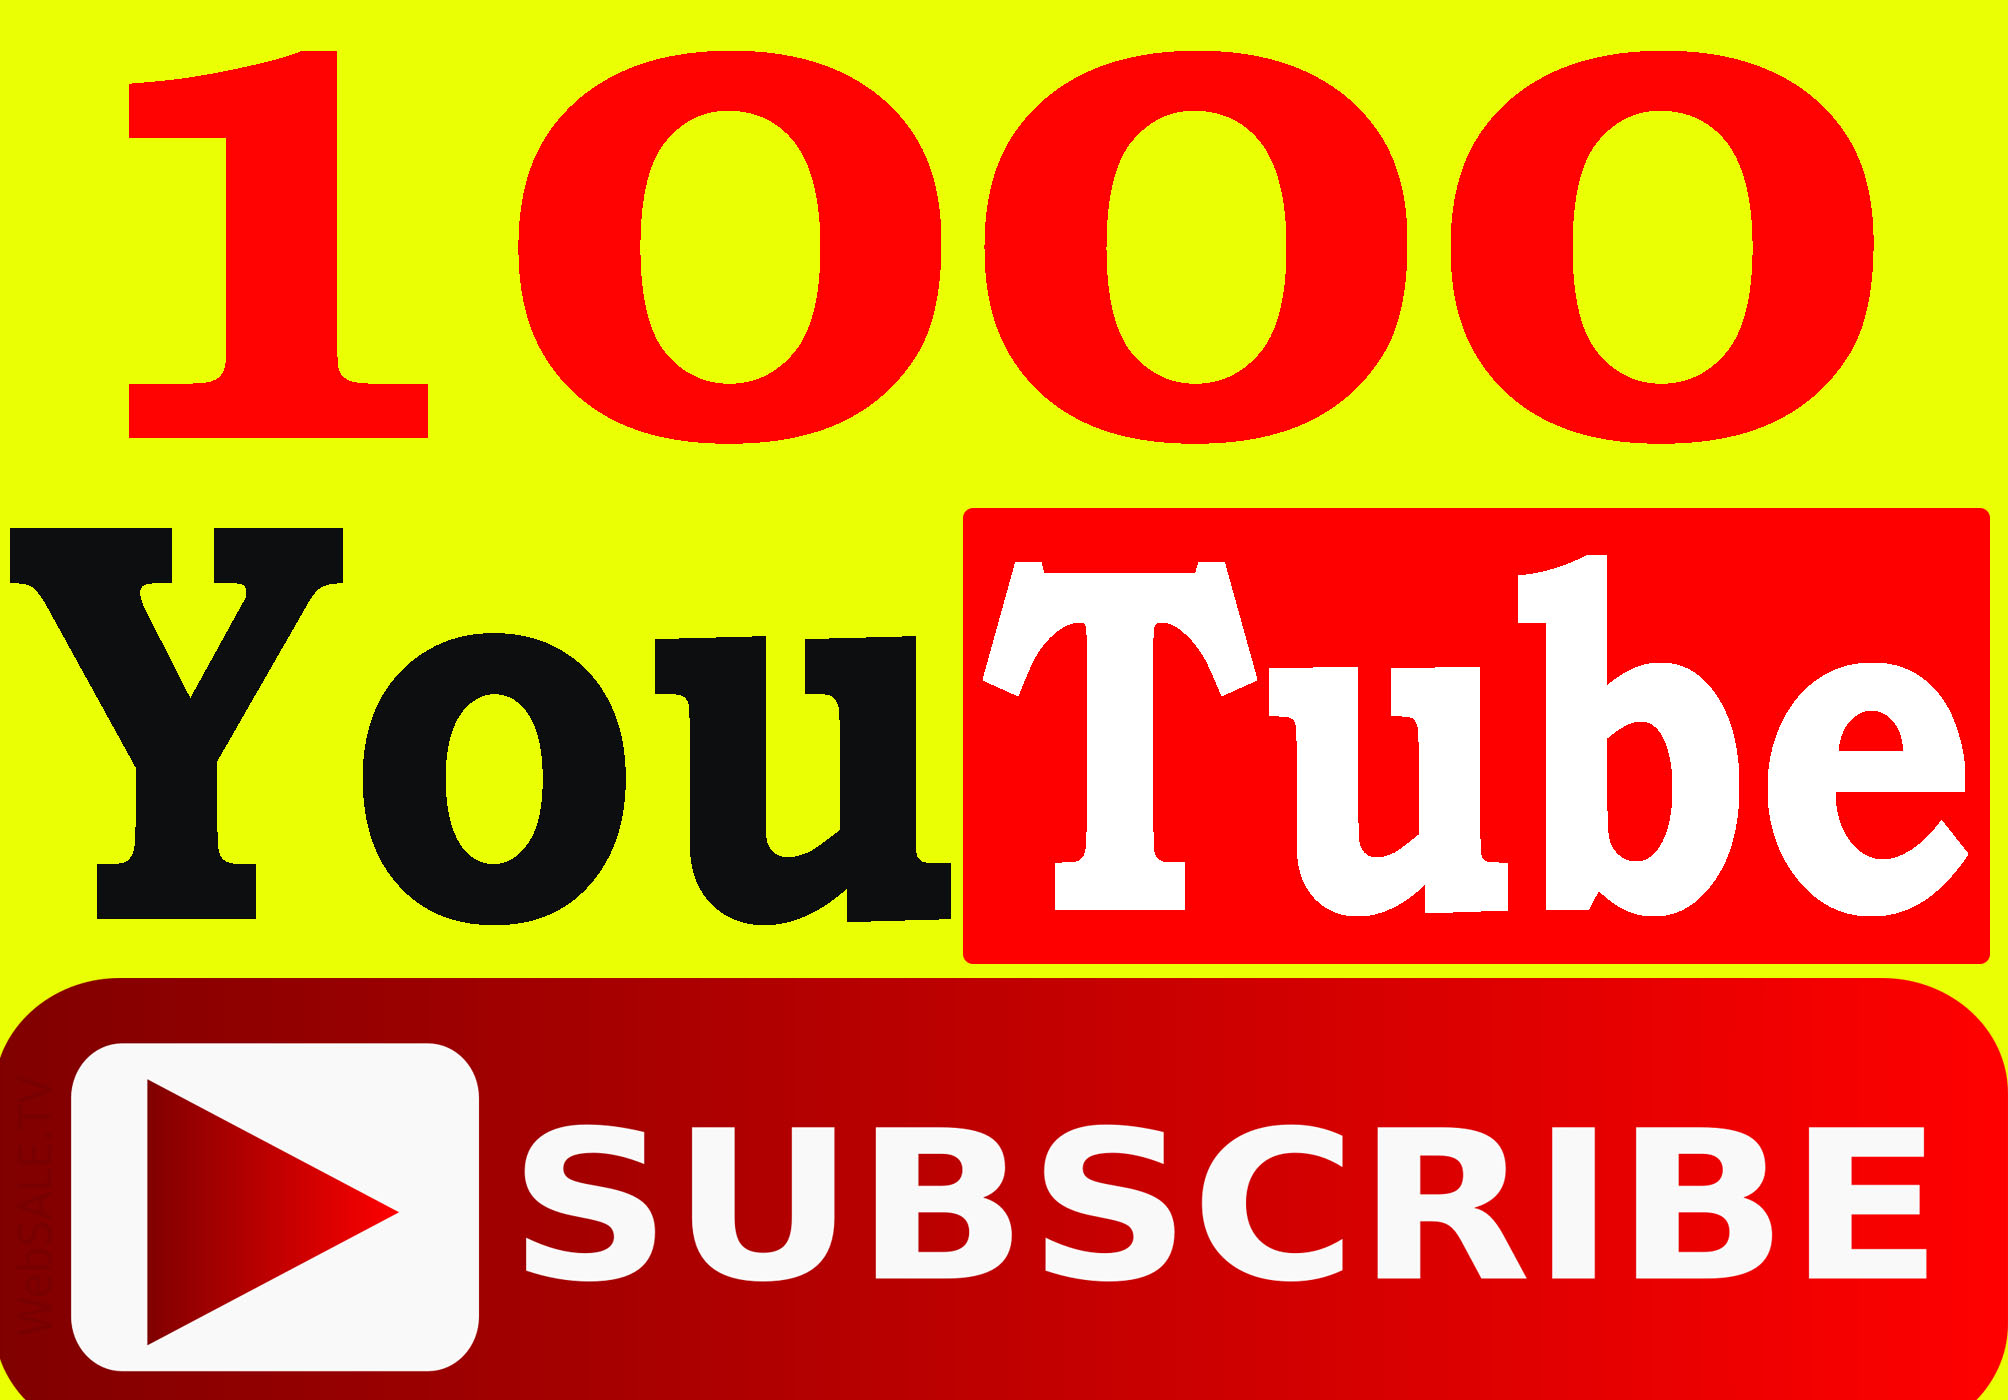 Extremely Fast 1000+ YouTube Subscribers lifetime refill guarantee